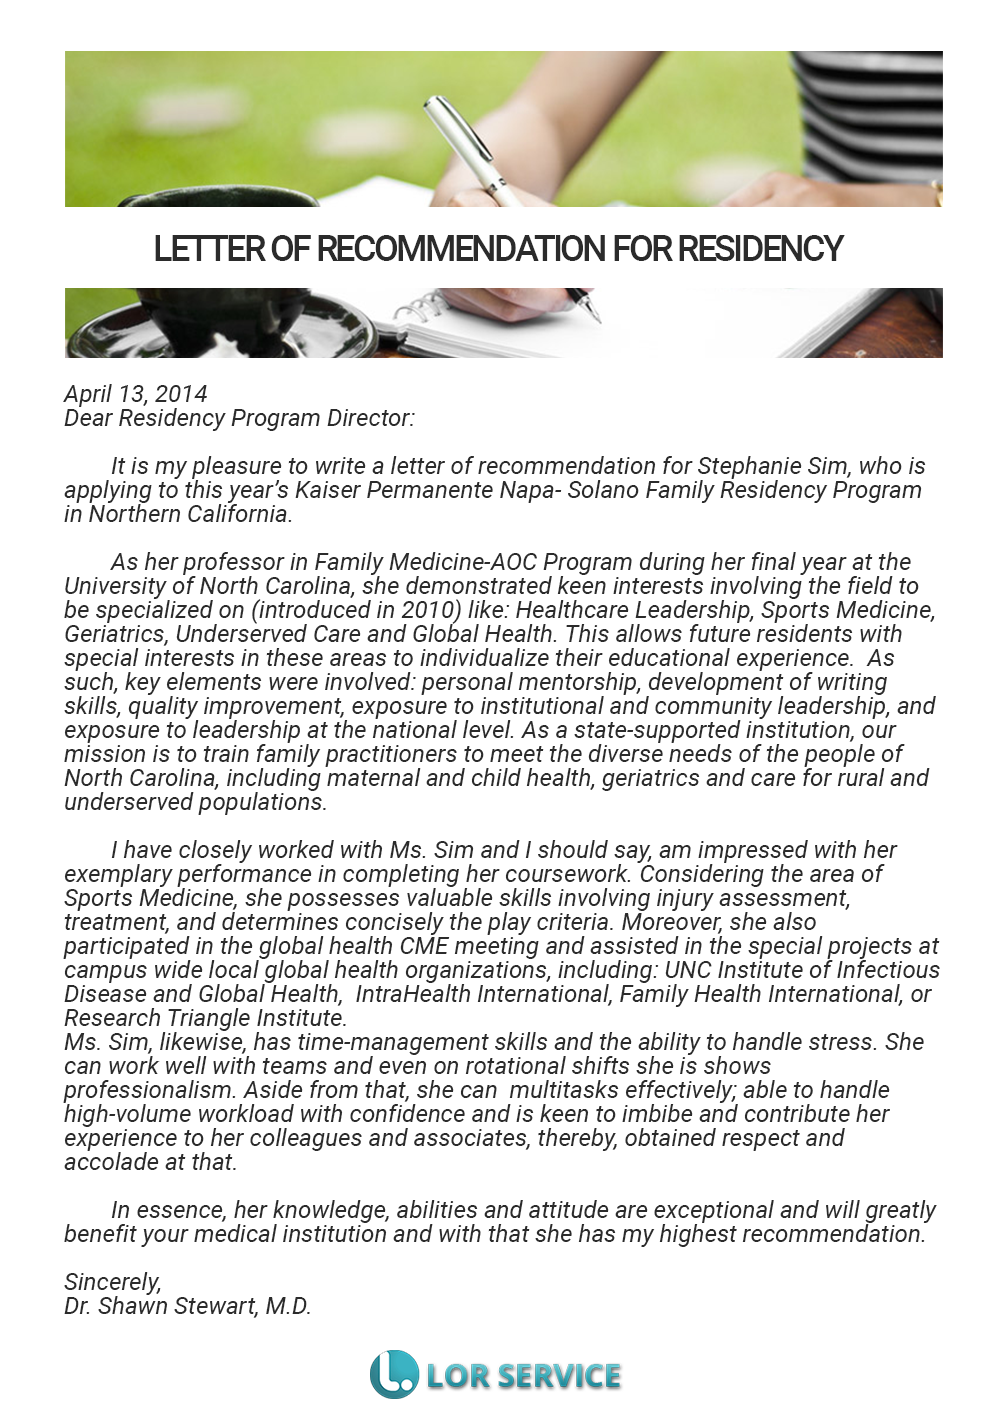 residency program recommendation letter sample eczasolinfco